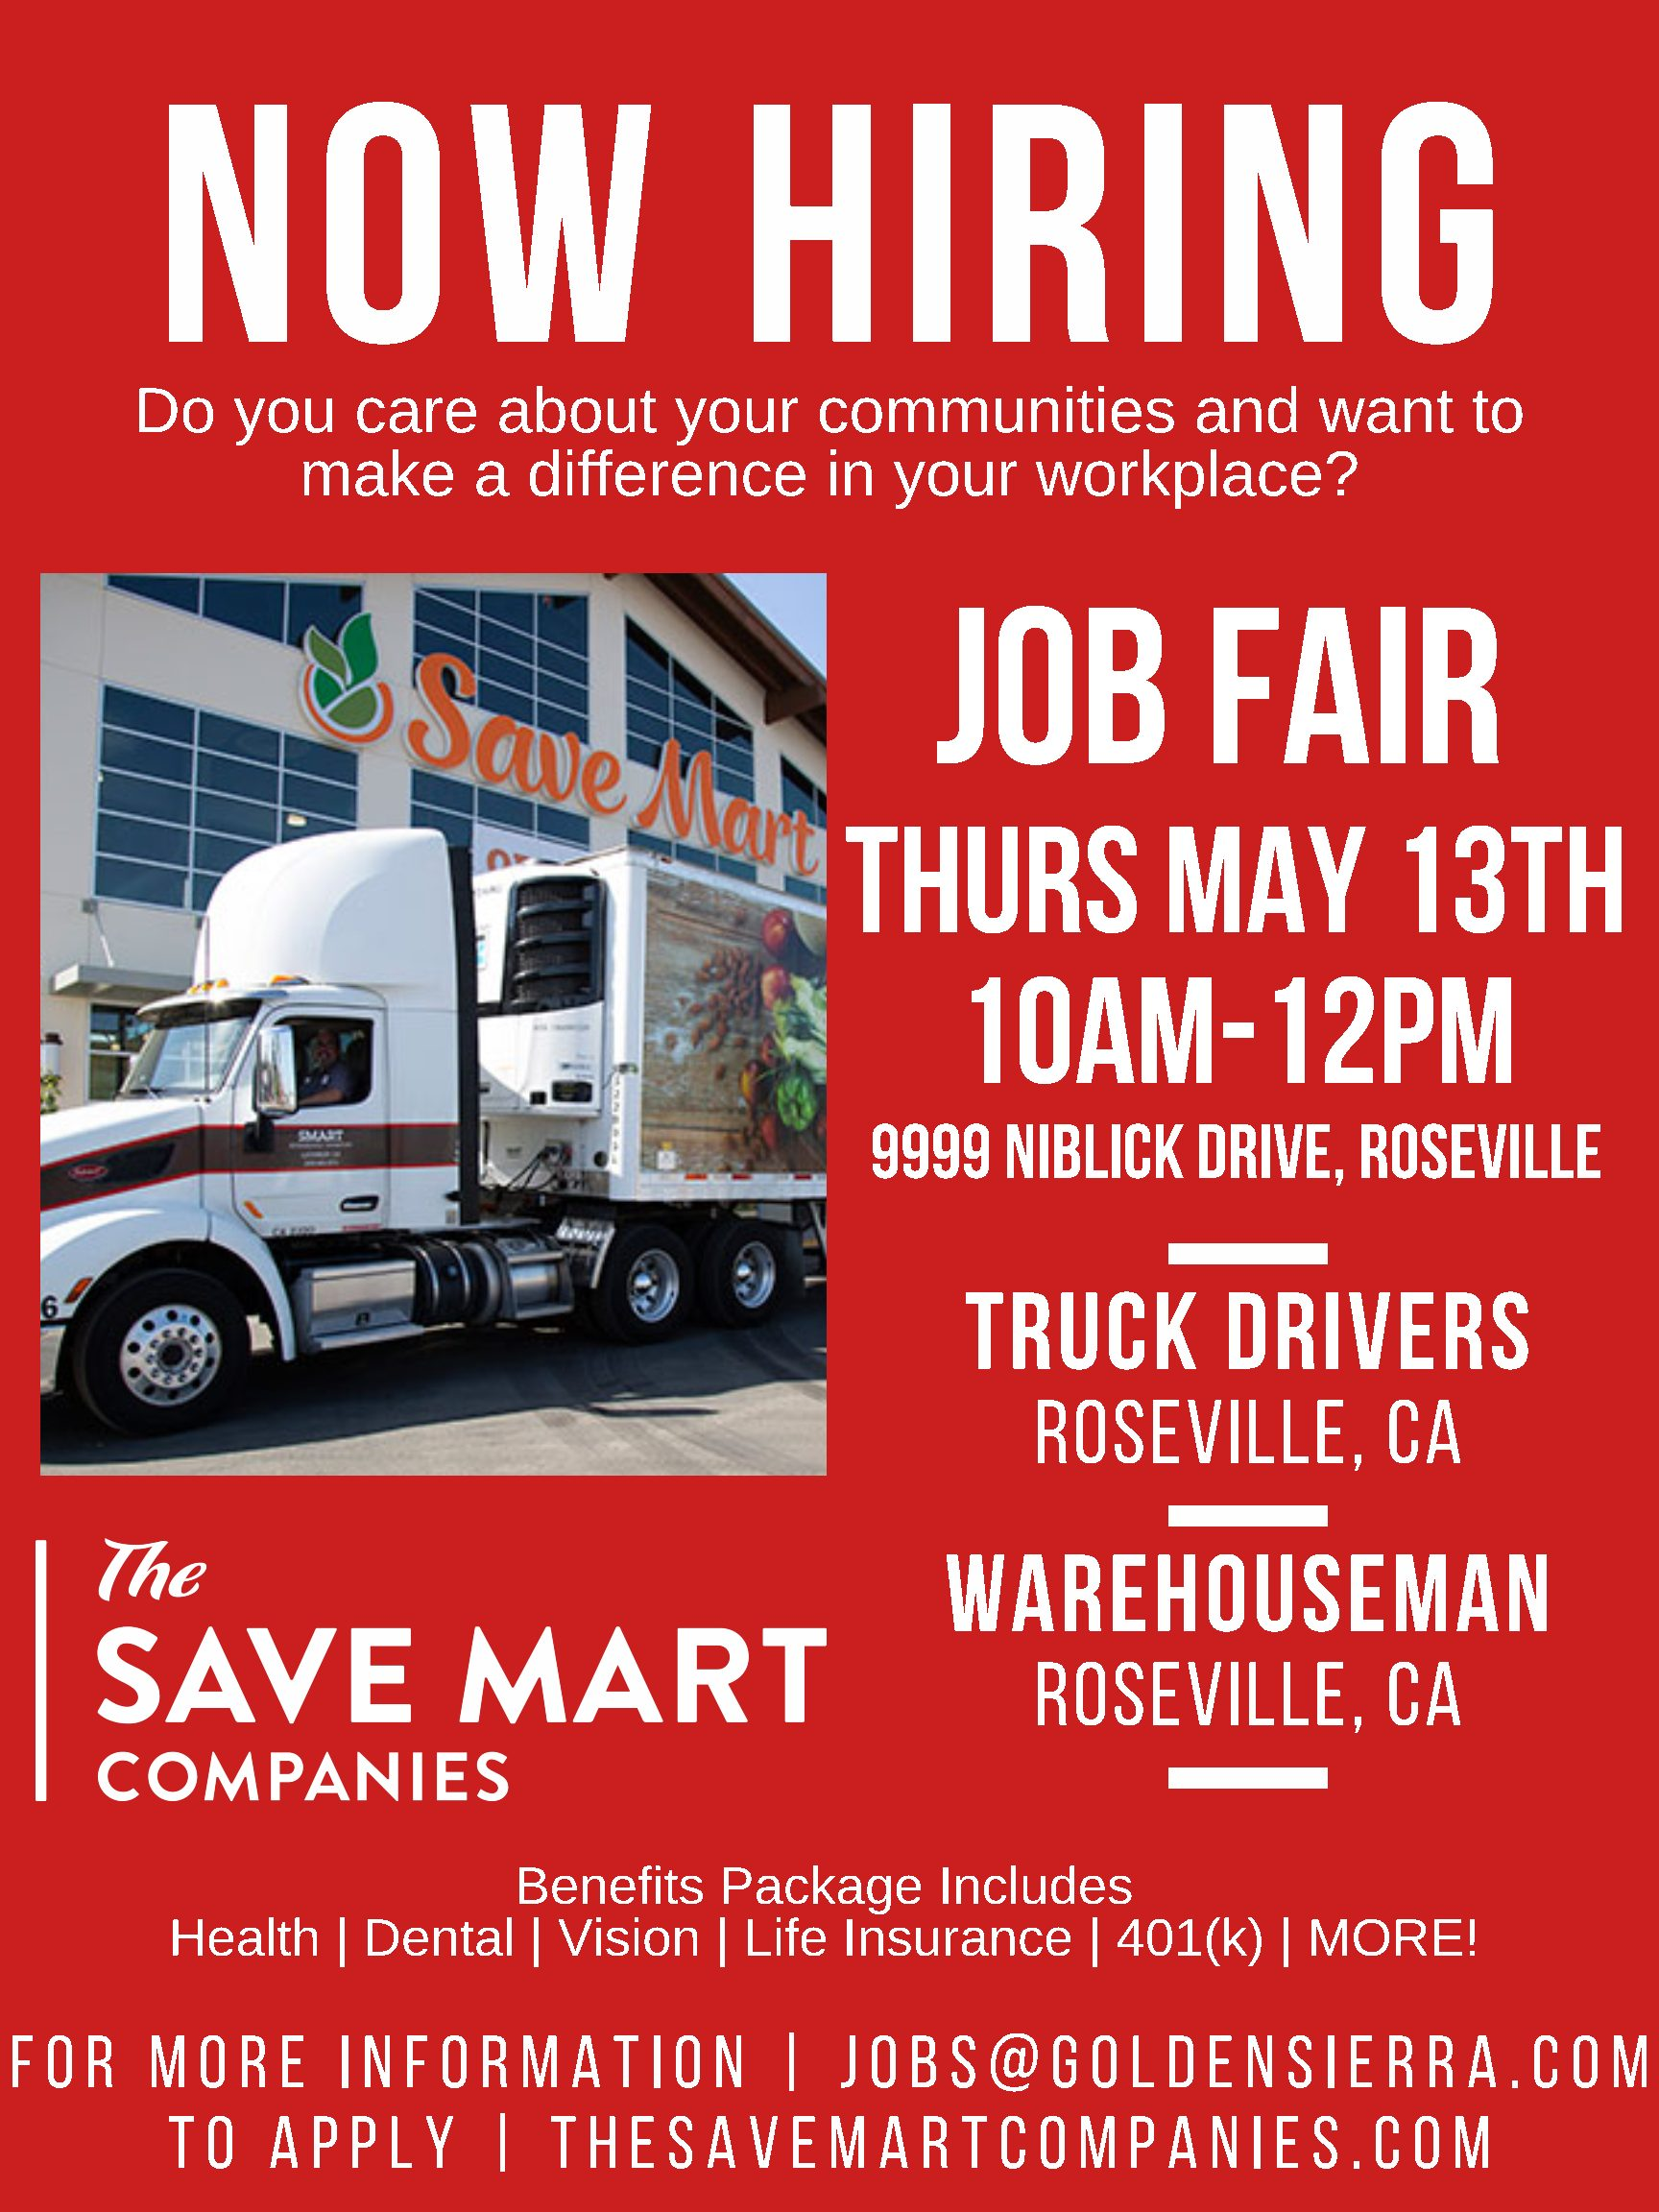 SaveMart Hiring Flyer (1)